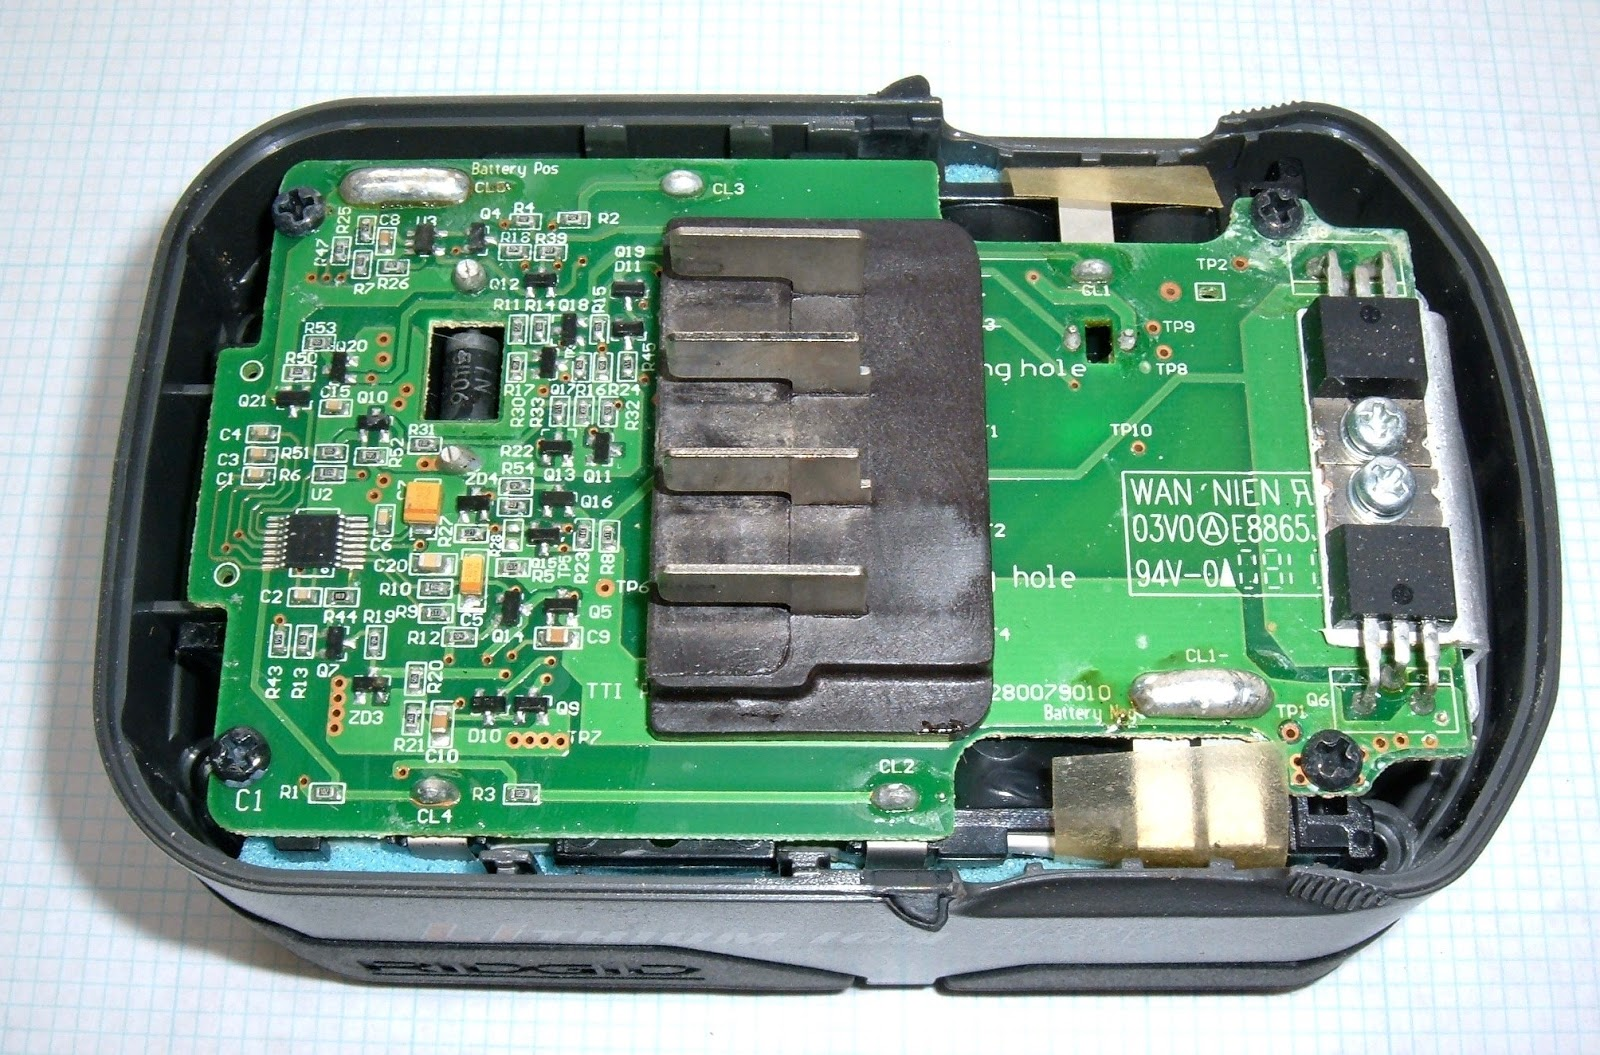 Syonyks Project Blog Rigid 18v Lithium Ion Tool Battery Teardowns Rechargeable Lithiumion Batteries With Protection Circuit Board Pcb The Hole In Is For 1n5406 Diode Why It Requires A Slightly Beyond Me But There